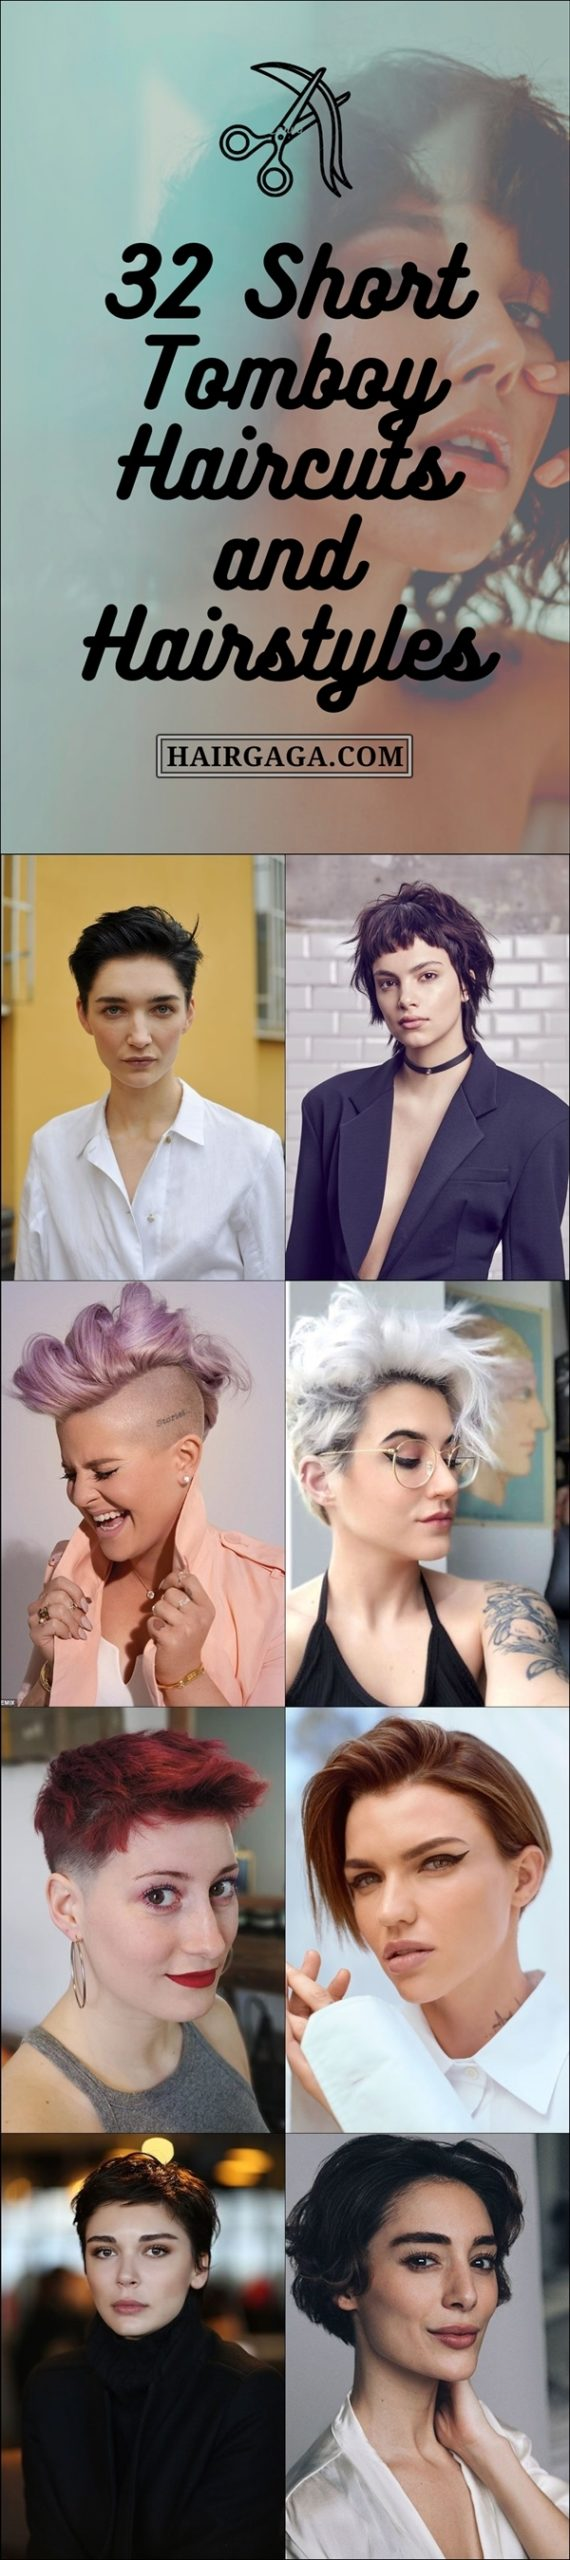 short-tomboy-haircuts-and-hairstyles